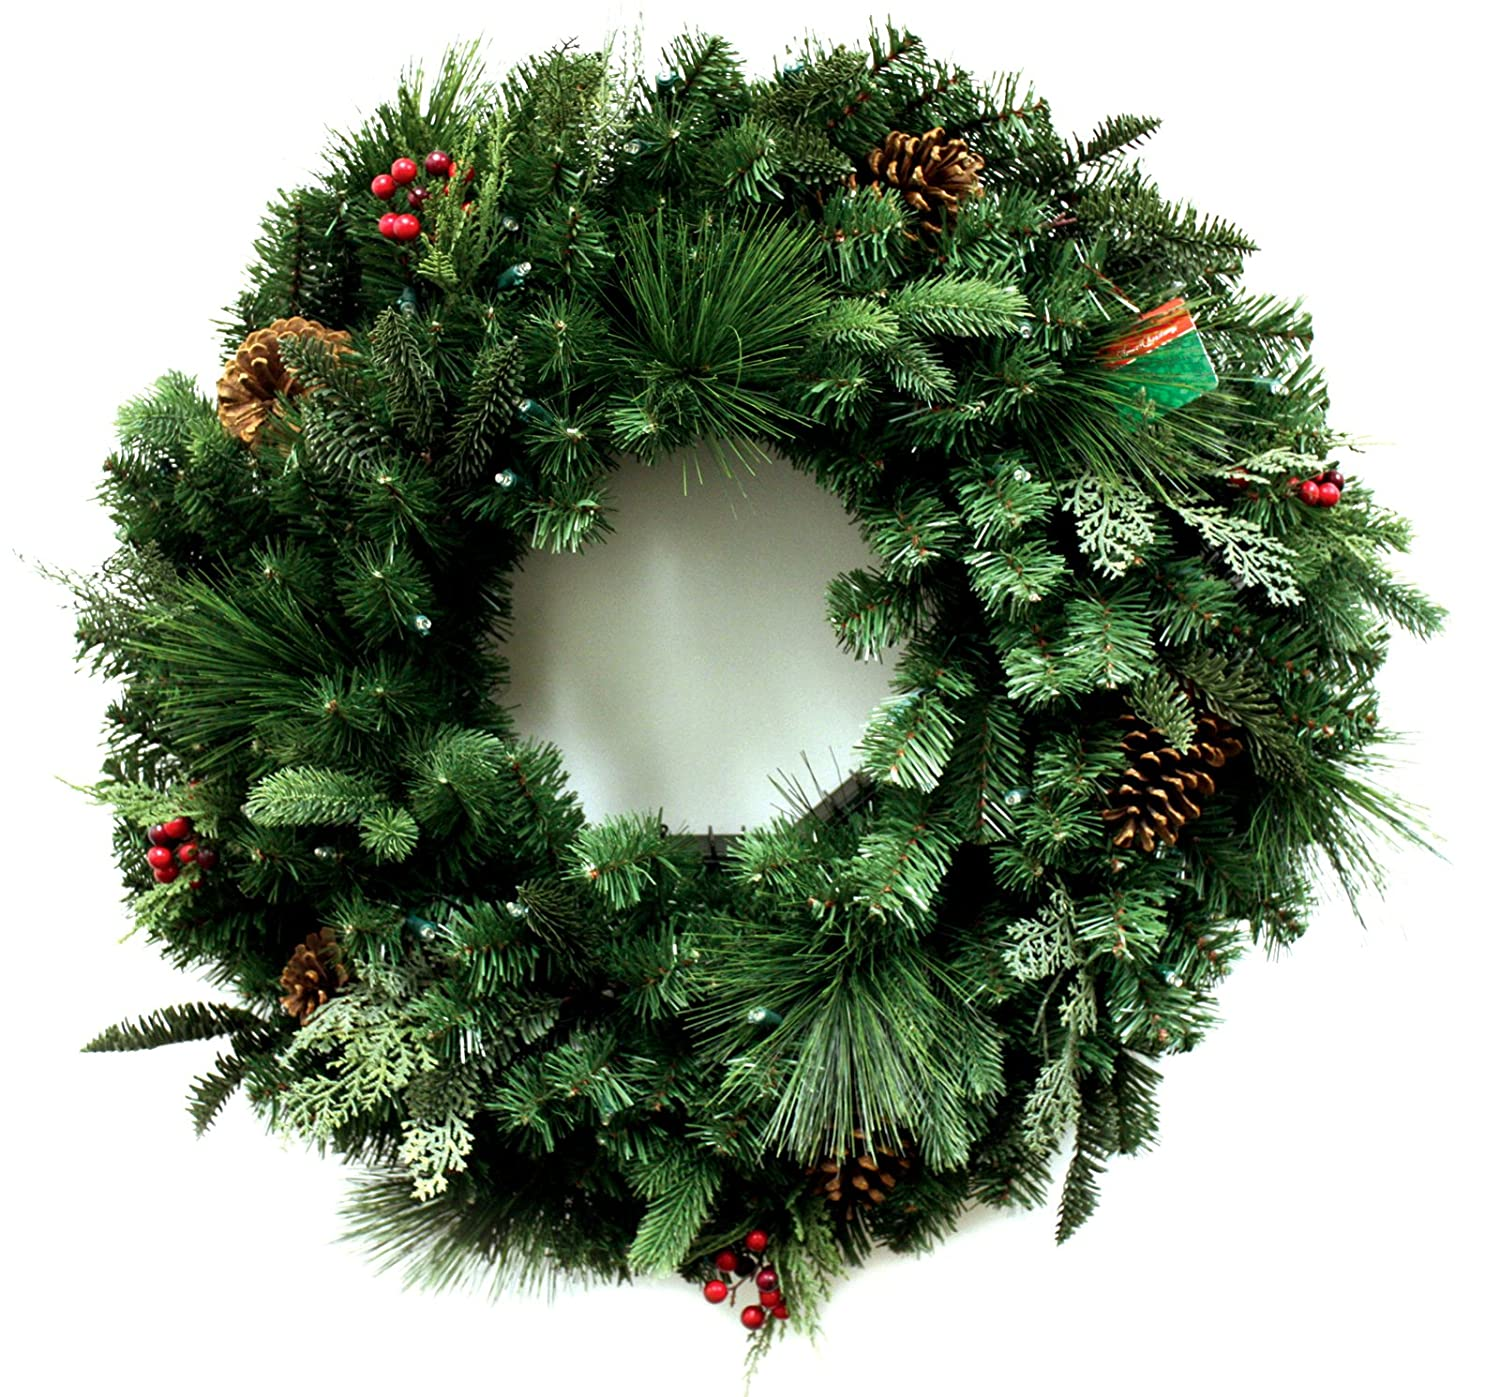 Best review top 10 wreaths to buy this christmas may 2018 for Best place to buy wreaths